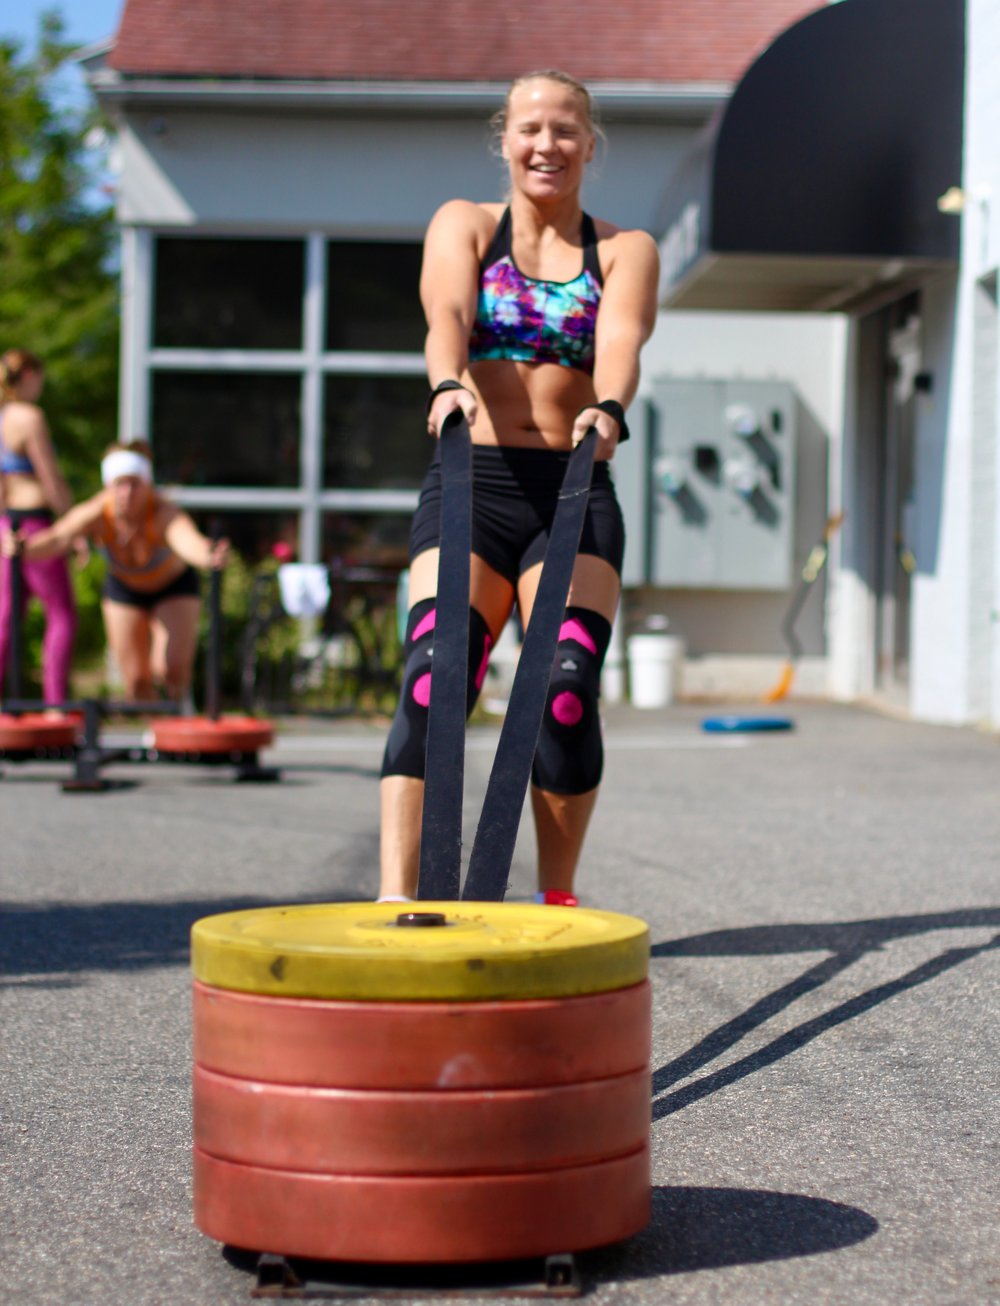 What an outstanding weekend at Pioneer Valley CrossFit! The PR bell rang constantly during our Total on Saturday, and sleds raced up and down our parking lot all through Sunday morning! More pictures to come! Here's a little preview with PVCF athlete, Katie Monahan digging in deep to keep that sled moving!